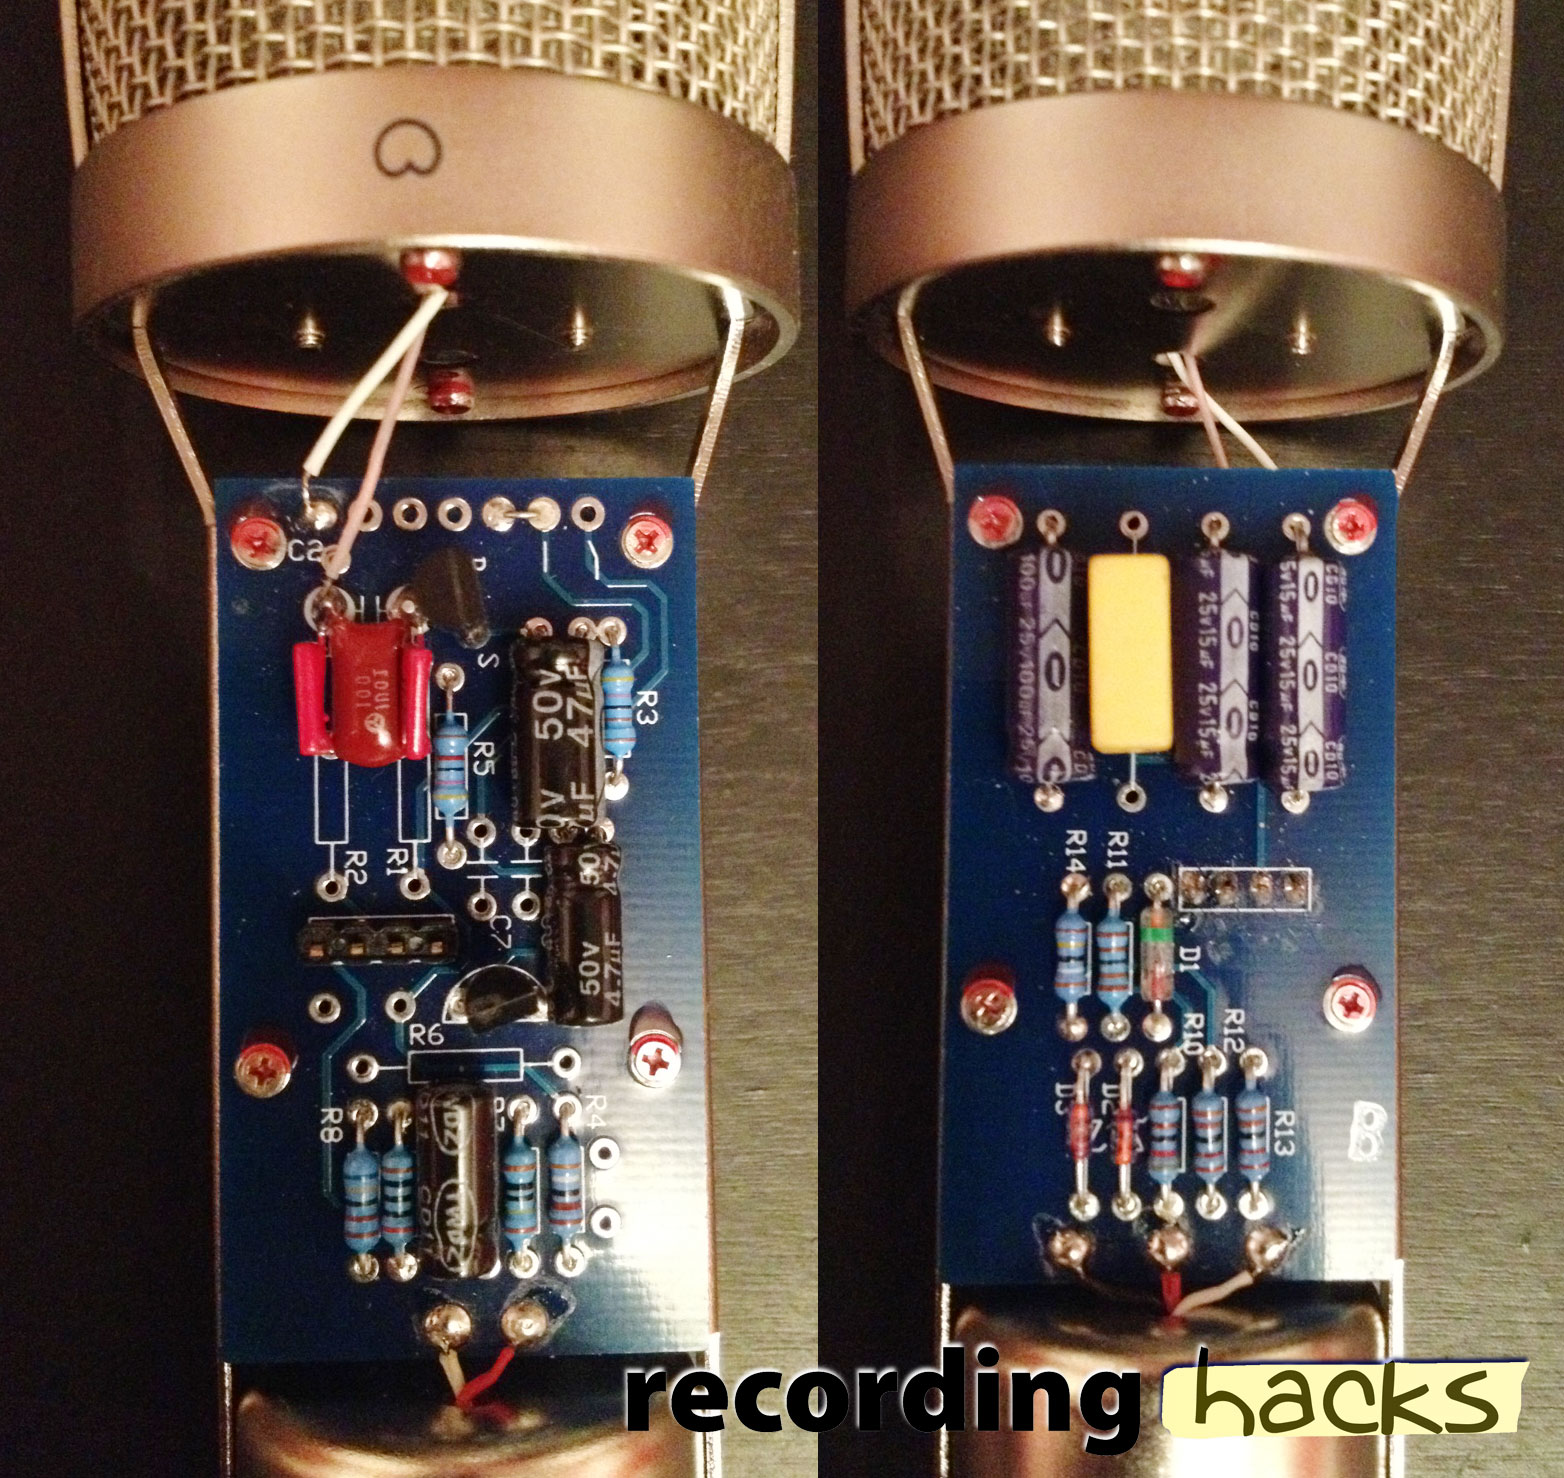 M Audio Behringer C1 Hybrid Hi Thanks For The Response In Circuit Provided By You I Do Not Gus Responding Circuitboards My Nova Are Exactly Same As Those This Link